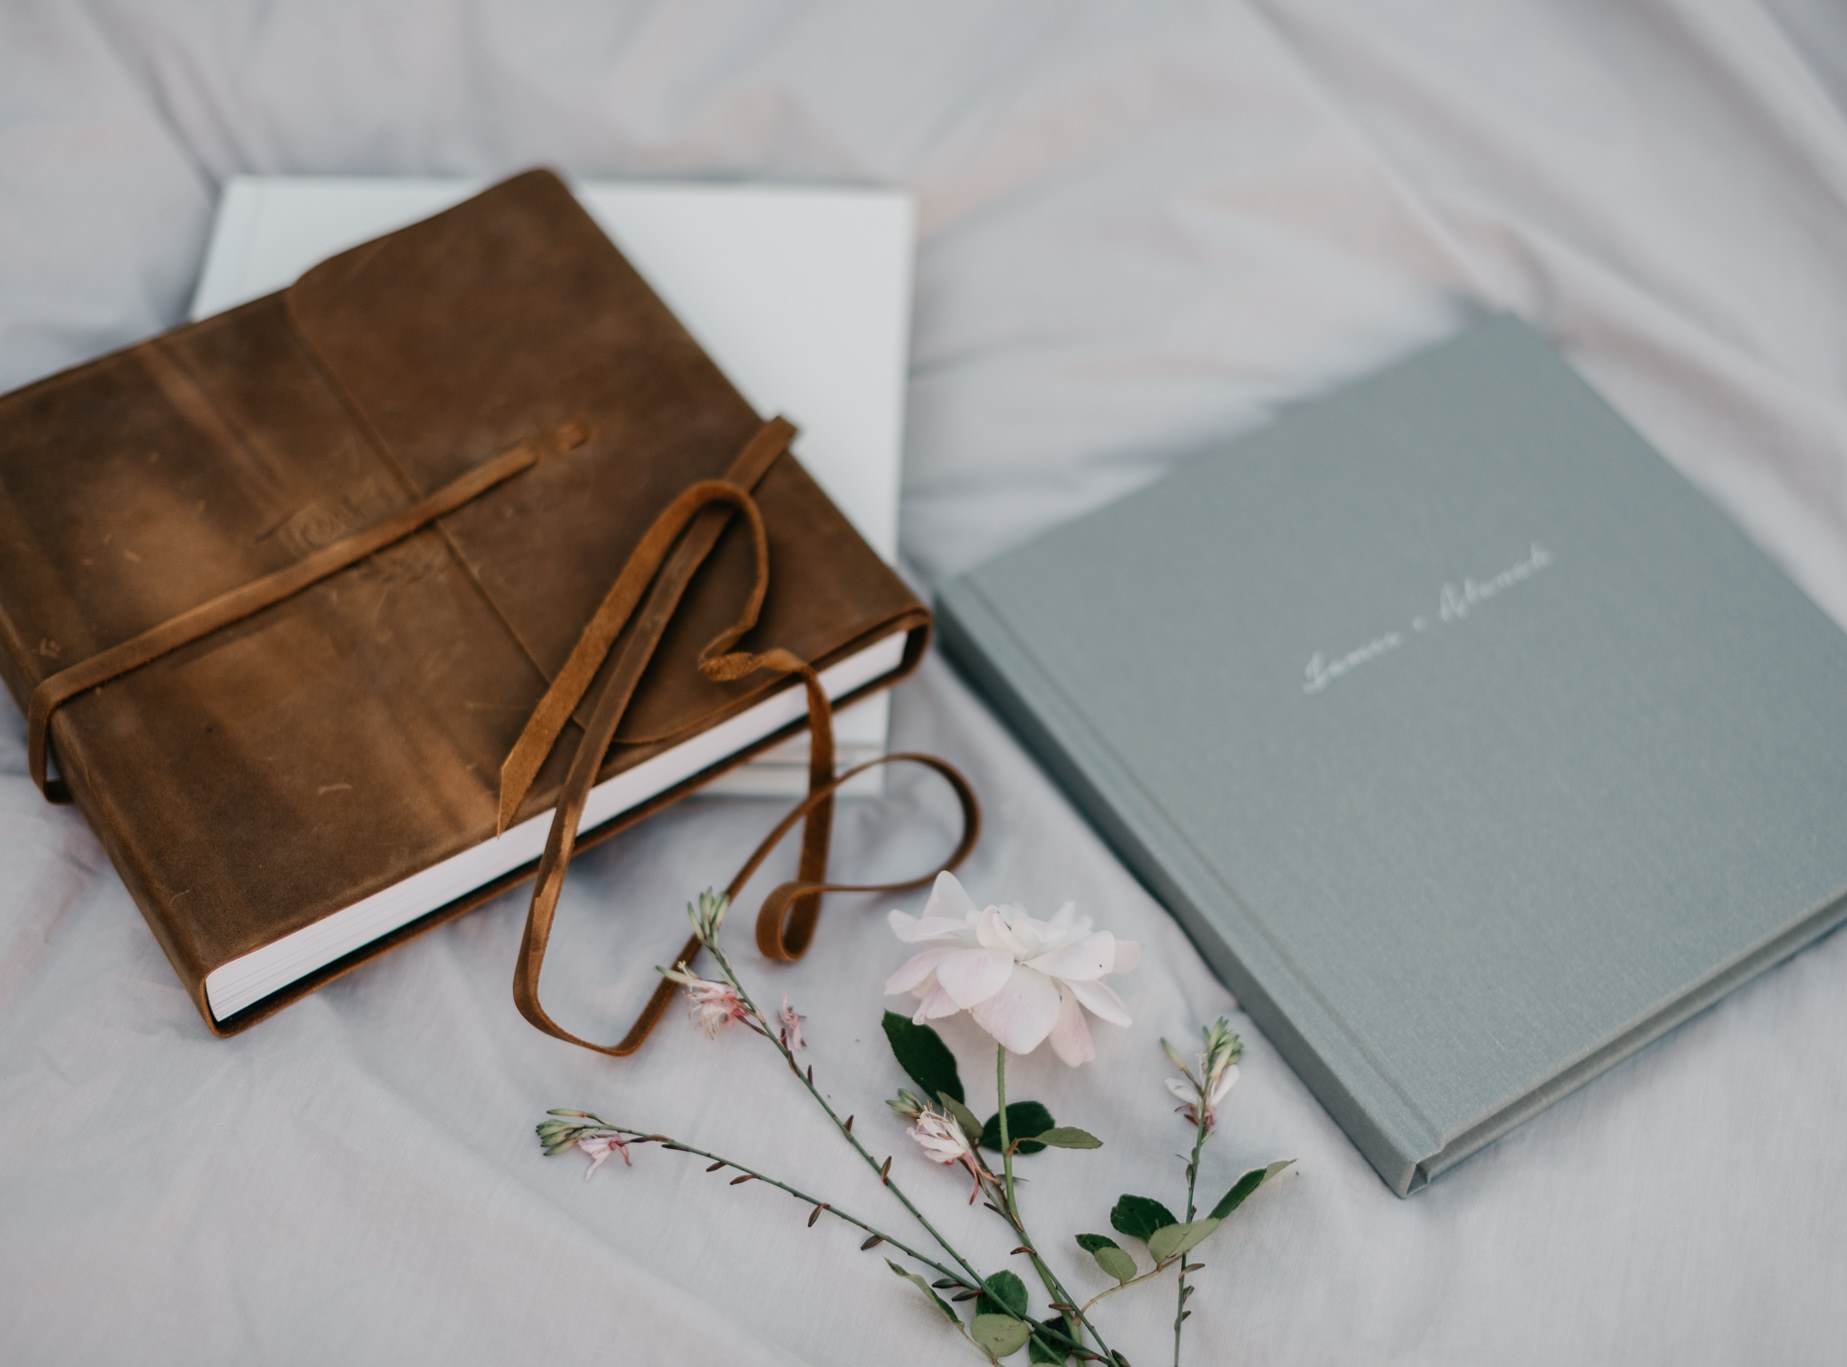 there really is no comparison - There is such a great difference between viewing your wedding photos through a digital screen and reliving the story of your day through the pages of a beautifully bound album. Your wedding album becomes an artefact; it not only contains your memories but ensures your story can be retold for generations to come.